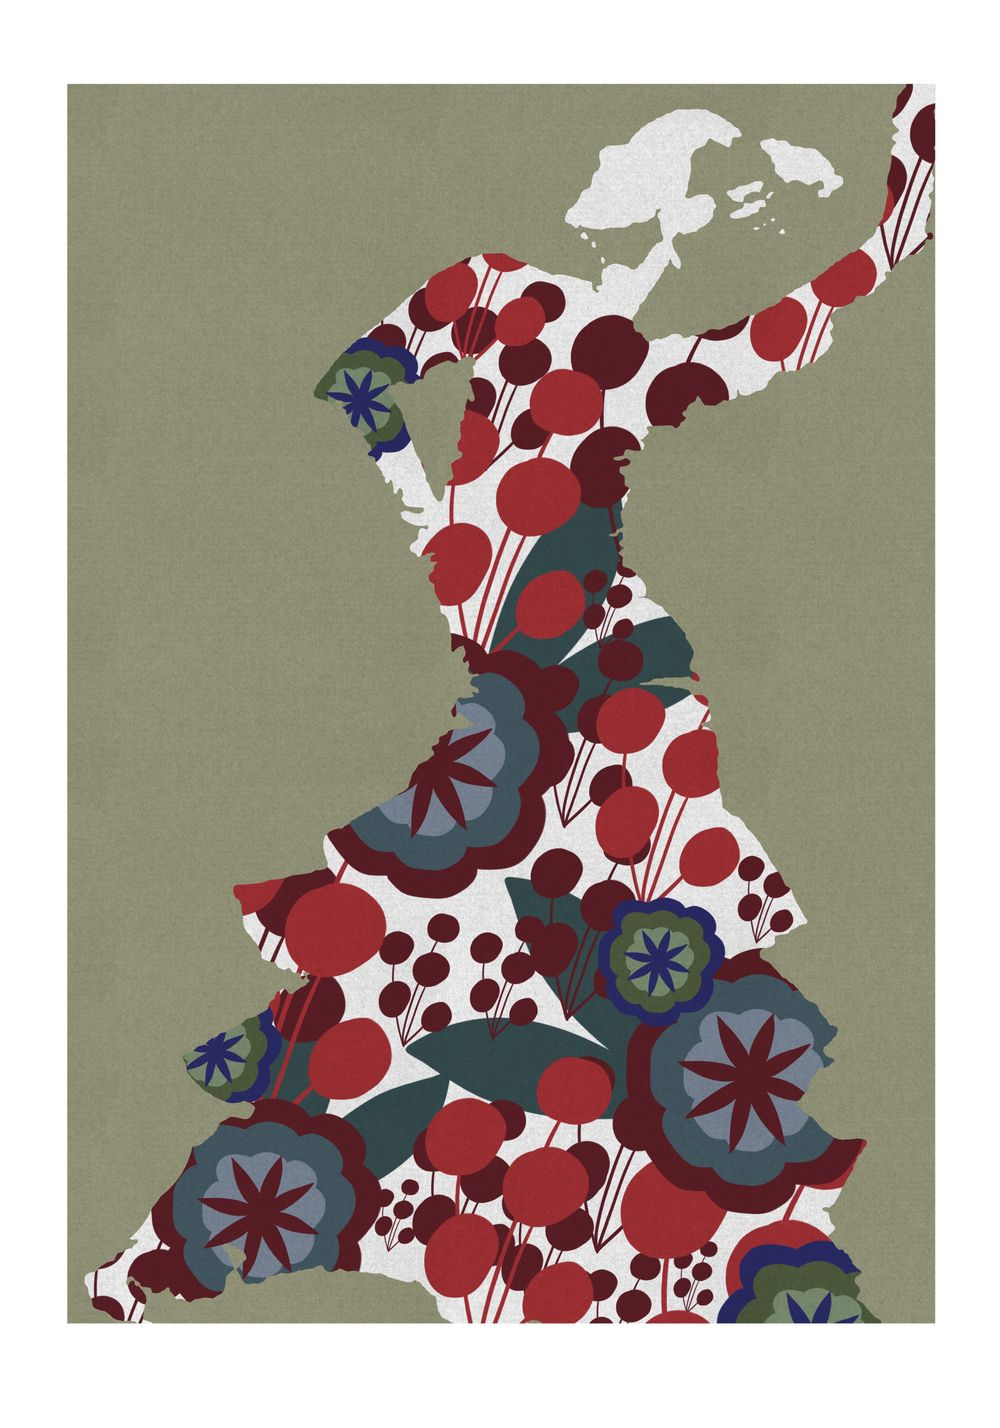 Flamenco Girl - image 1 - student project